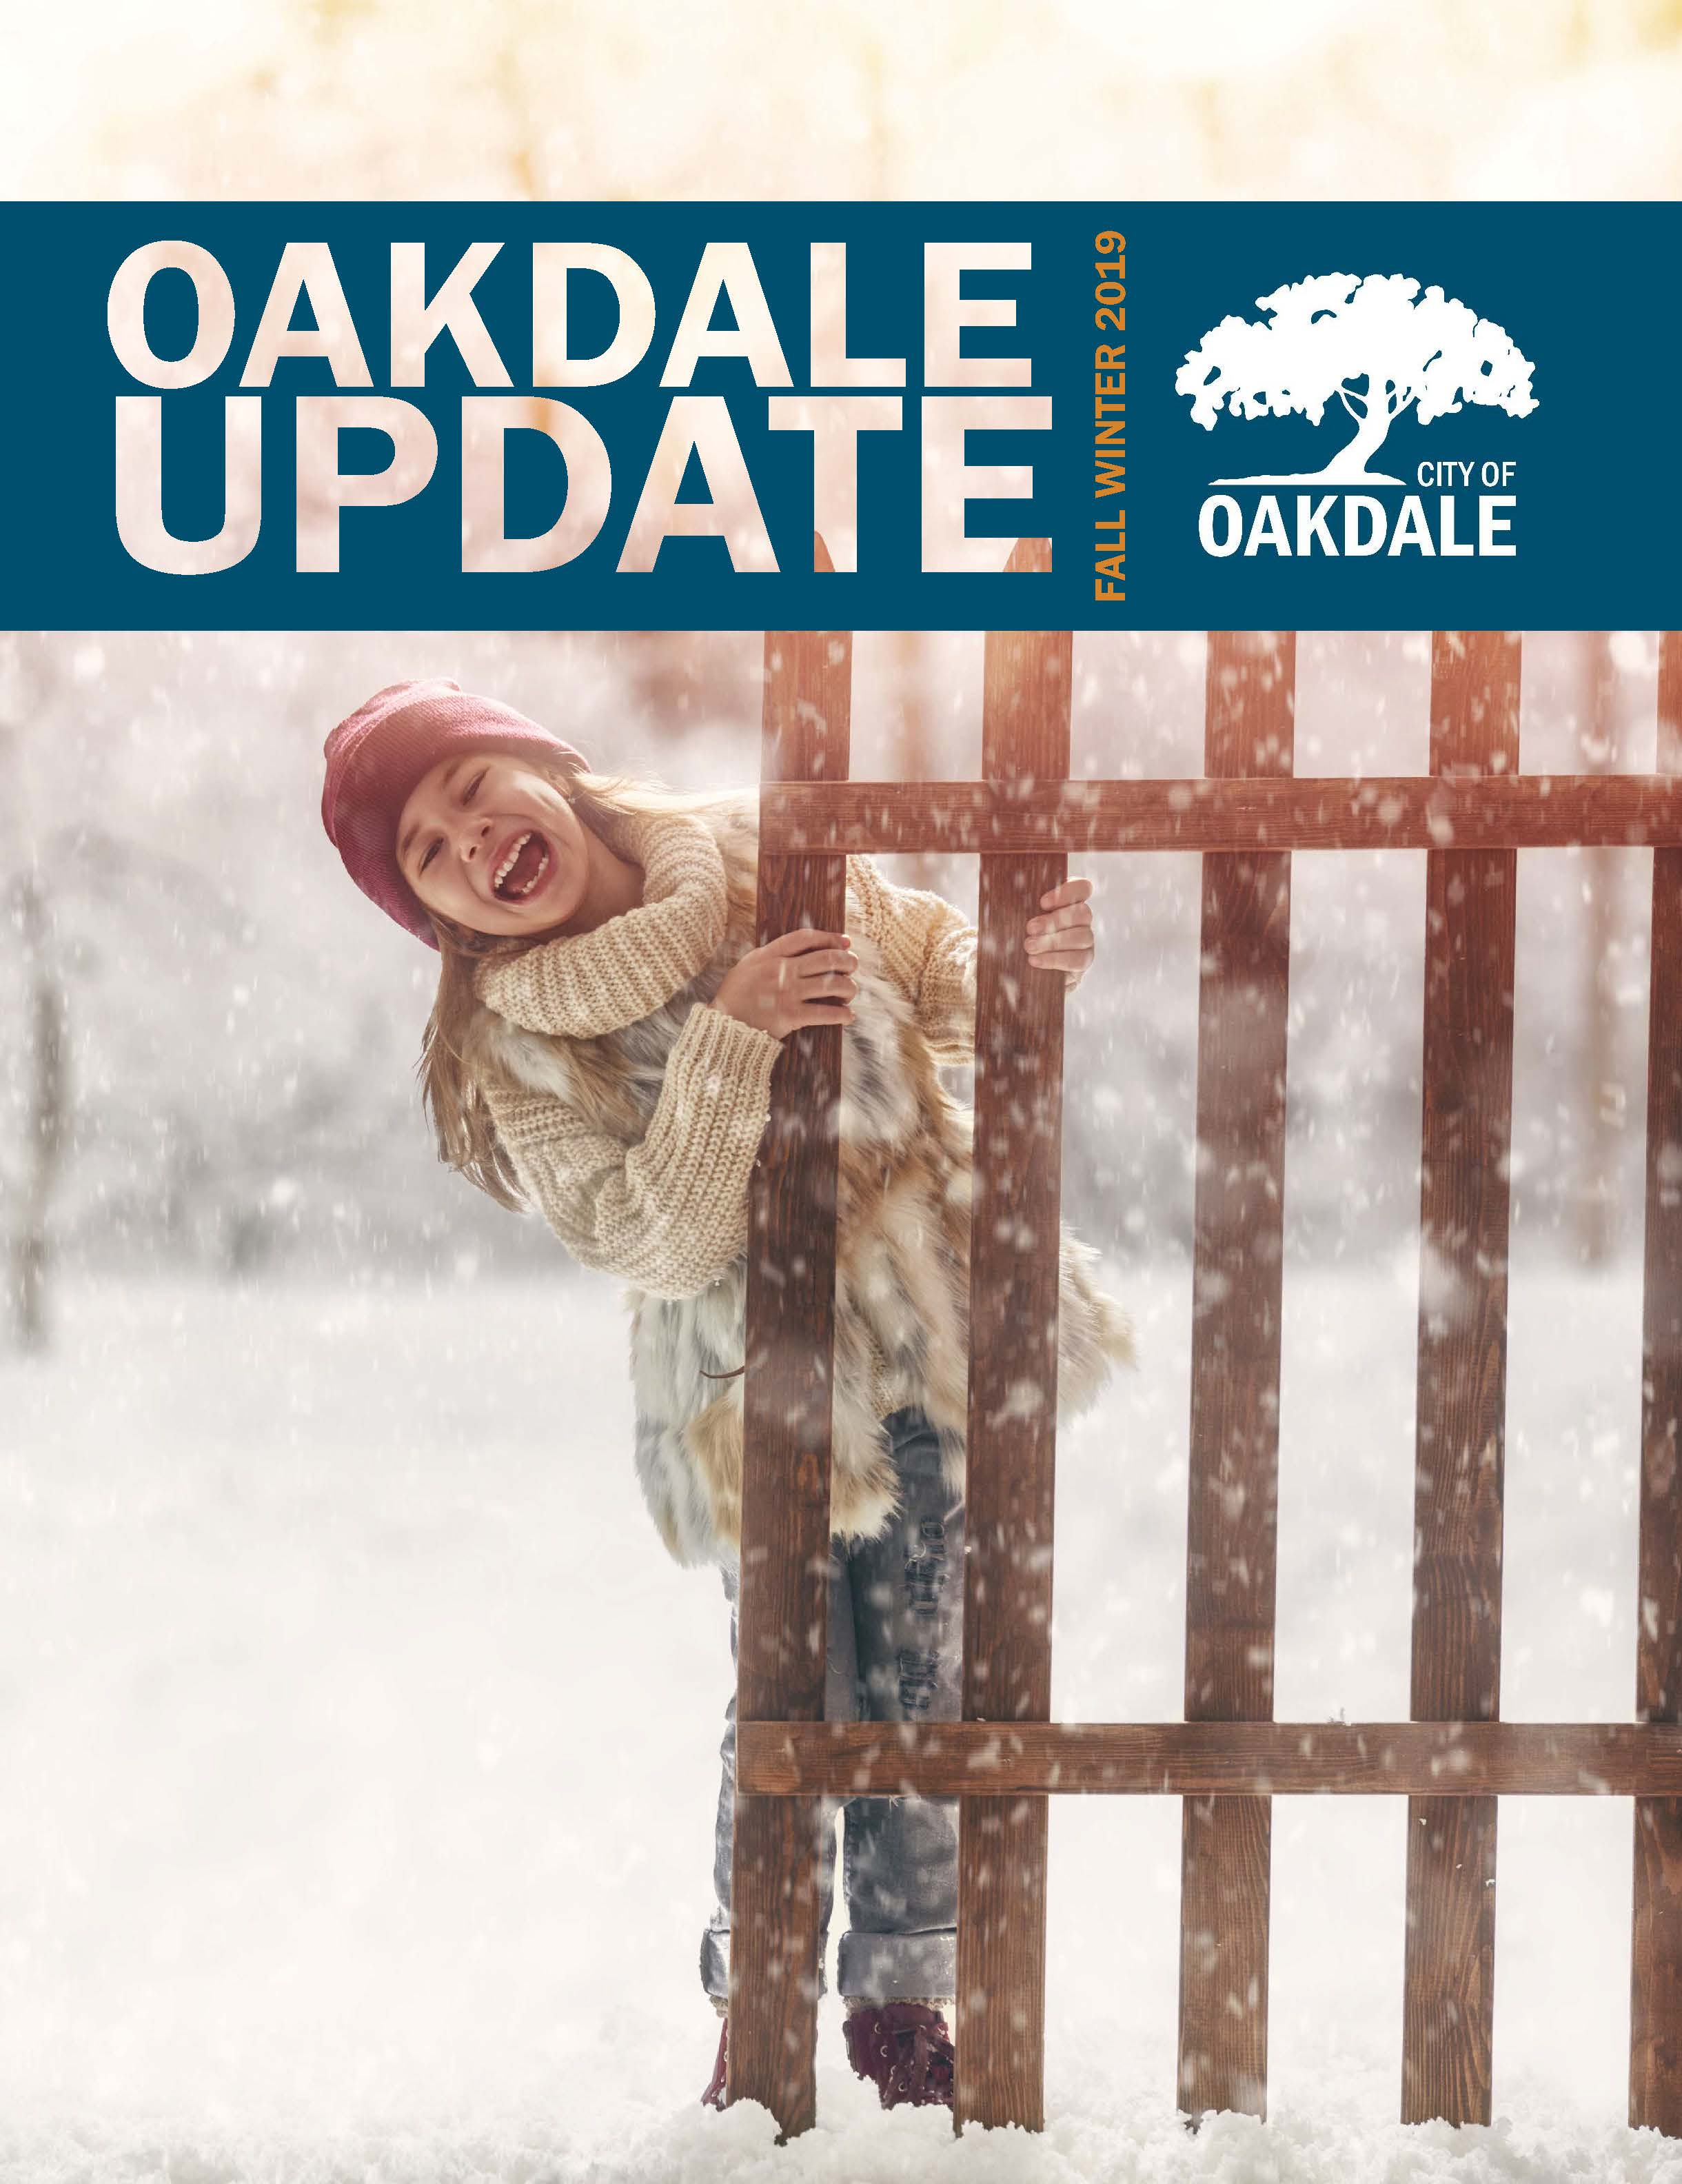 Cover of Oakdale Update Newsletter for Winter 2019 showing girl in snow